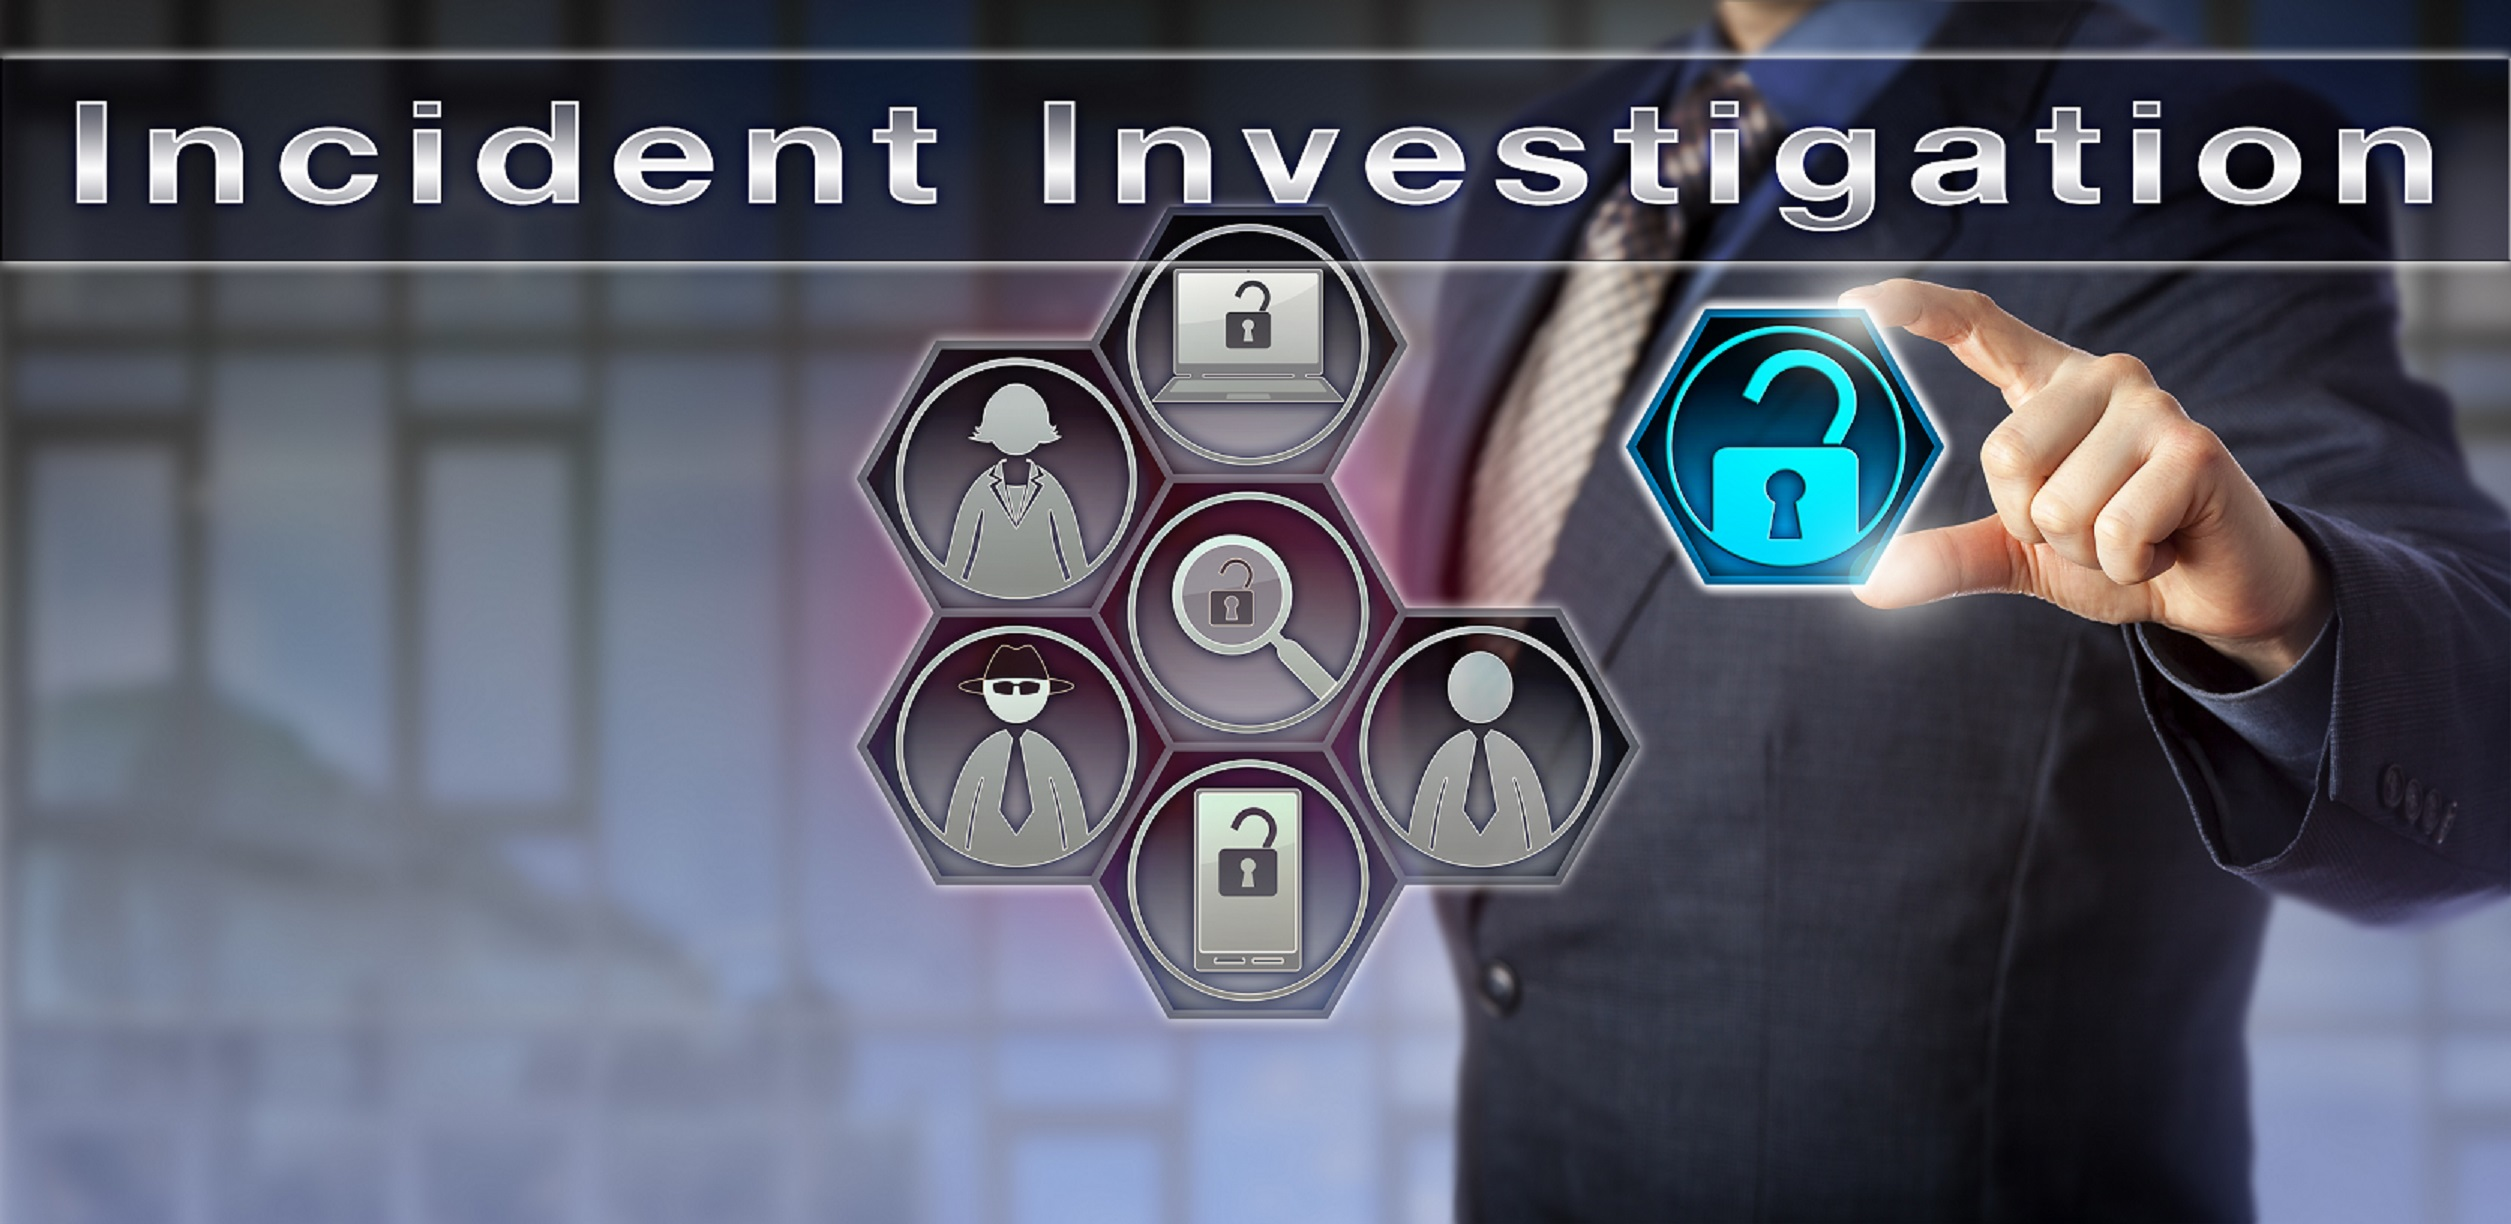 Conduct an investigation into workplace incidents